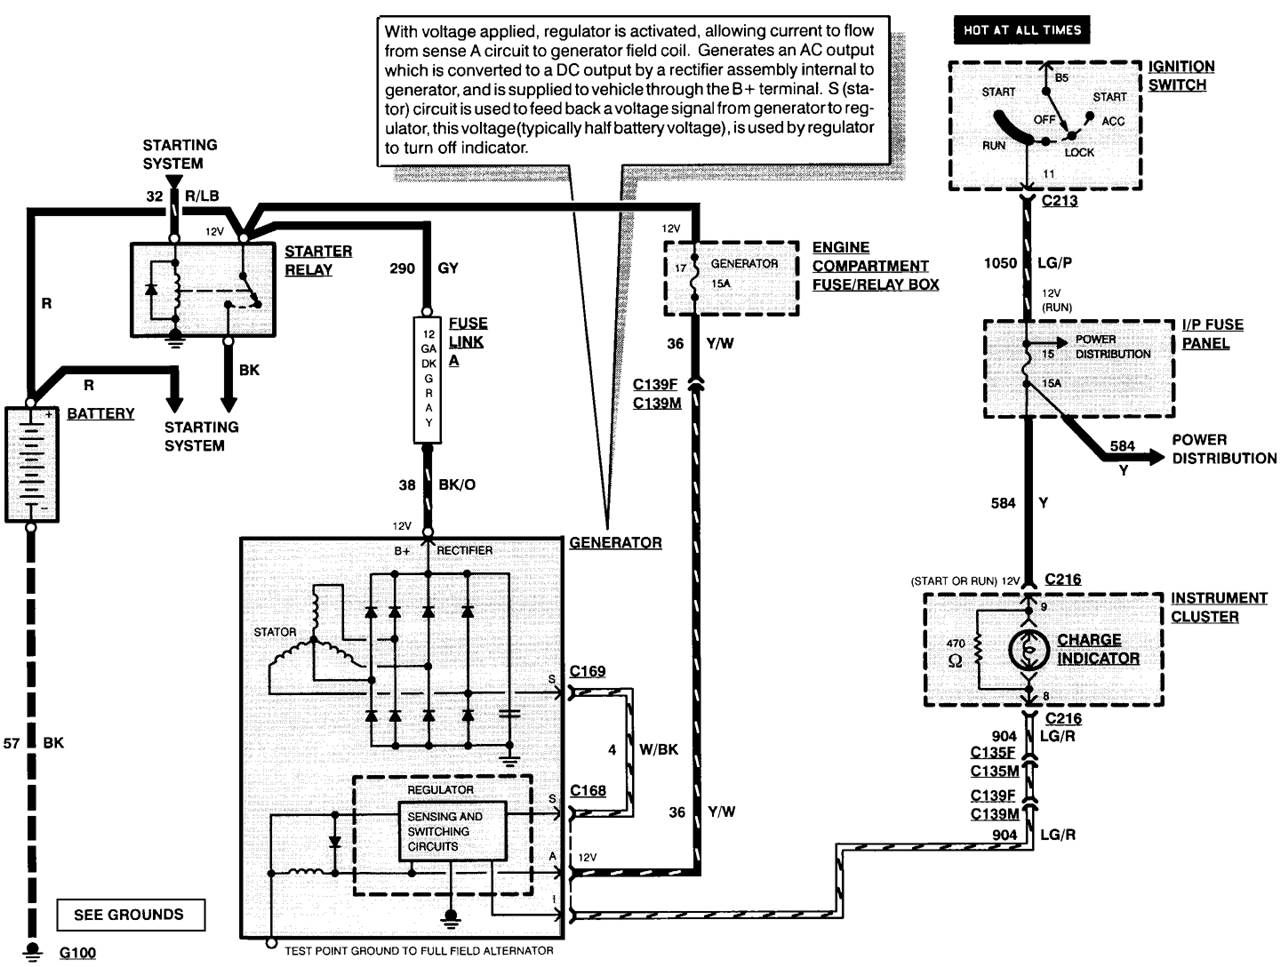 Ford alternator wiring diagram internal regulator ford alternator wiring diagrams carsut understand cars and ford alternator wiring diagram internal regulator at readyjetset.co